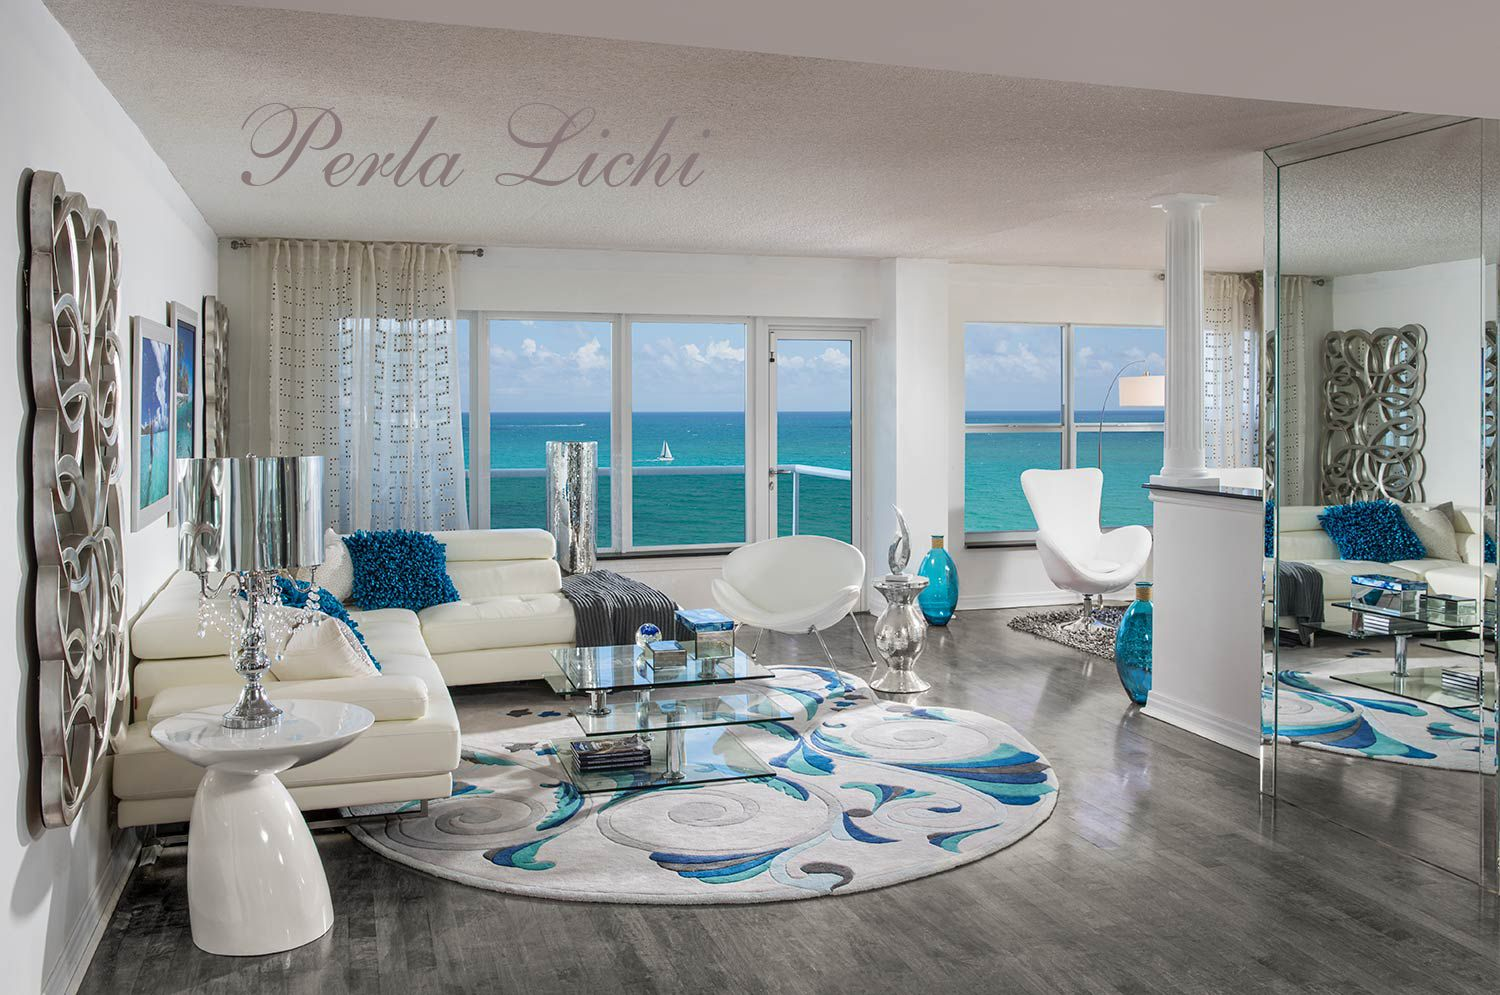 Living room with ocean view Luxury interior decorating